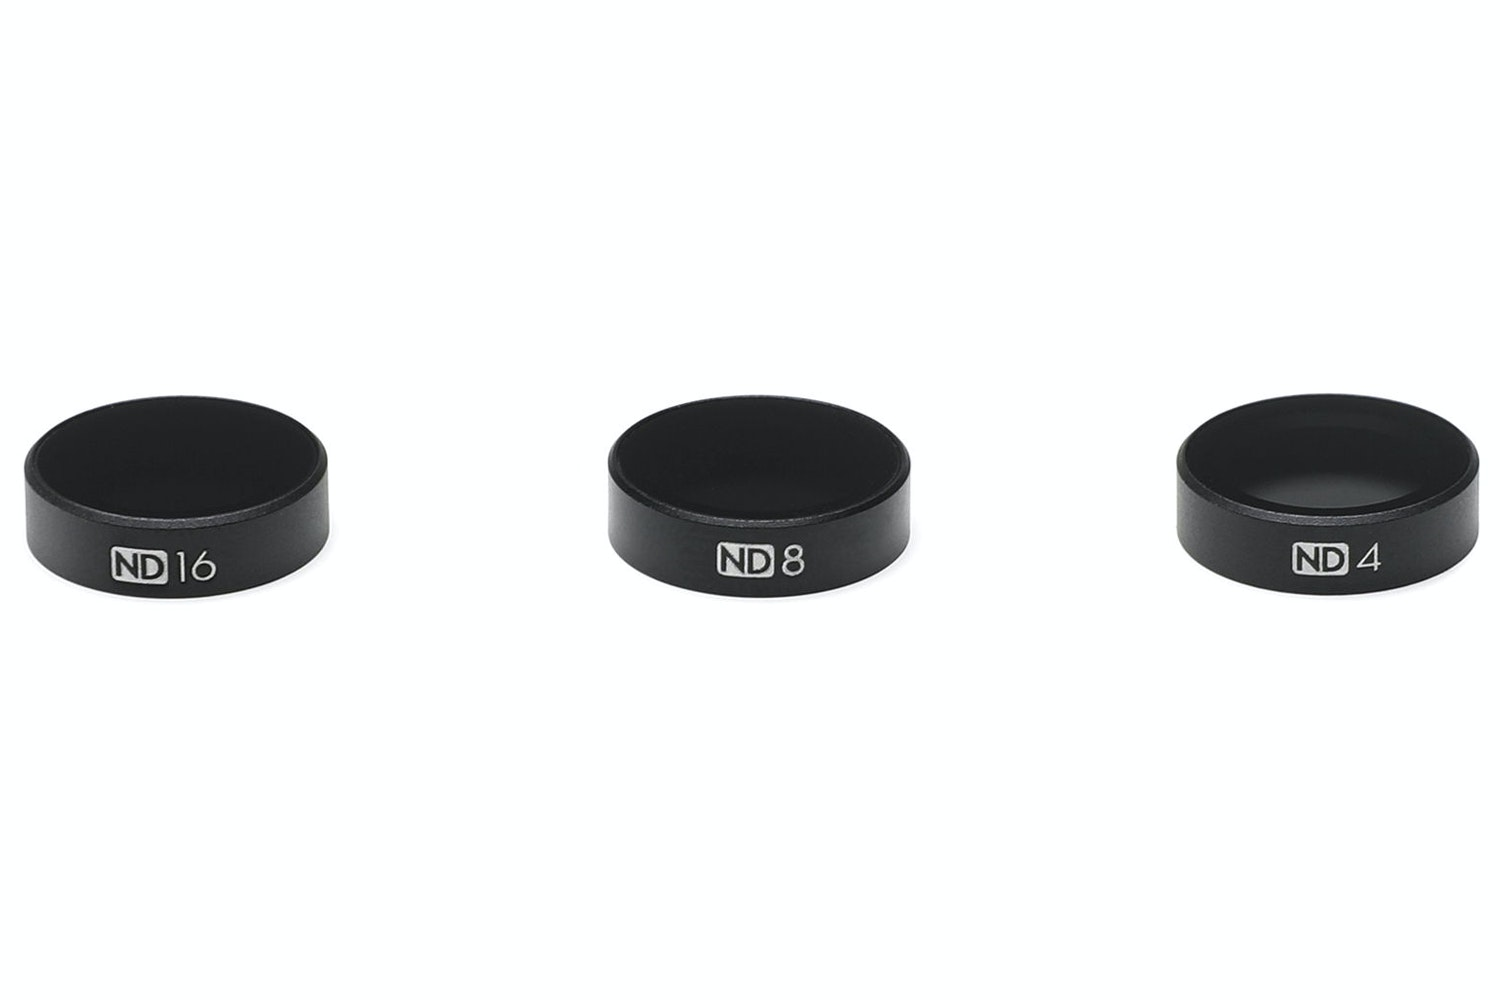 DJI Mavic Air ND4/8/16 Filters Set